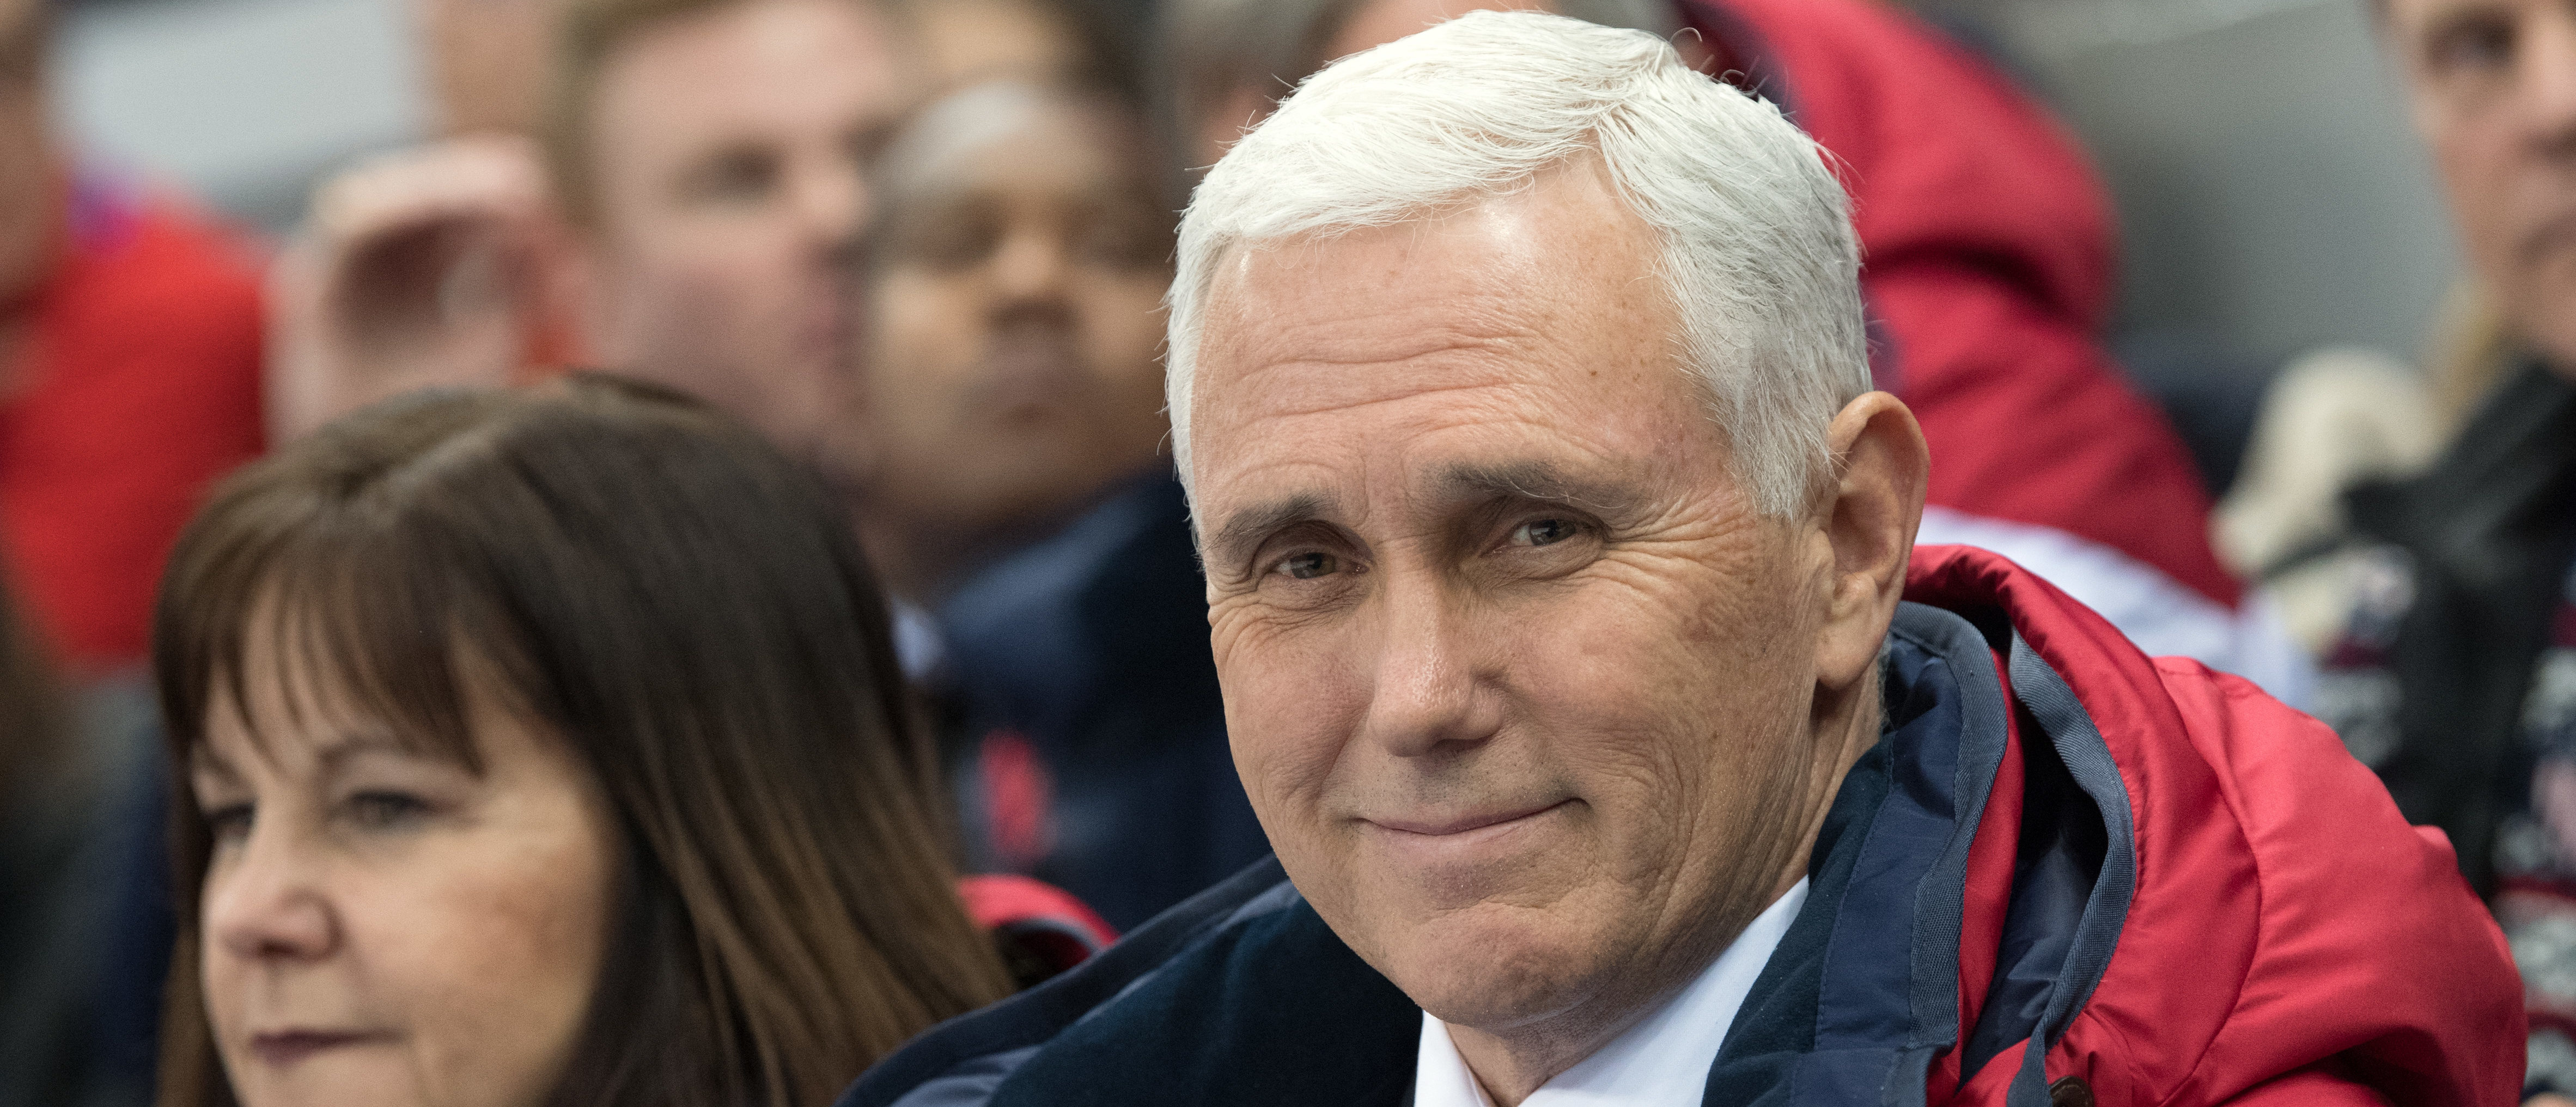 GANGNEUNG, SOUTH KOREA - FEBRUARY 10: United States Vice President Mike Pence and his wife Karen watch short track speed skating at Gangneung Ice Arena on February 10, 2018 in Gangneung, South Korea. Mr Pence is on the final day of a three day visit to South Korea where he watched last night's opening ceremony in close proximity to North Korea's ceremonial head of state Kim Yong-nam and Kim Jong-un's sister, Kim Yo-jong. (Photo by Carl Court/Getty Images)